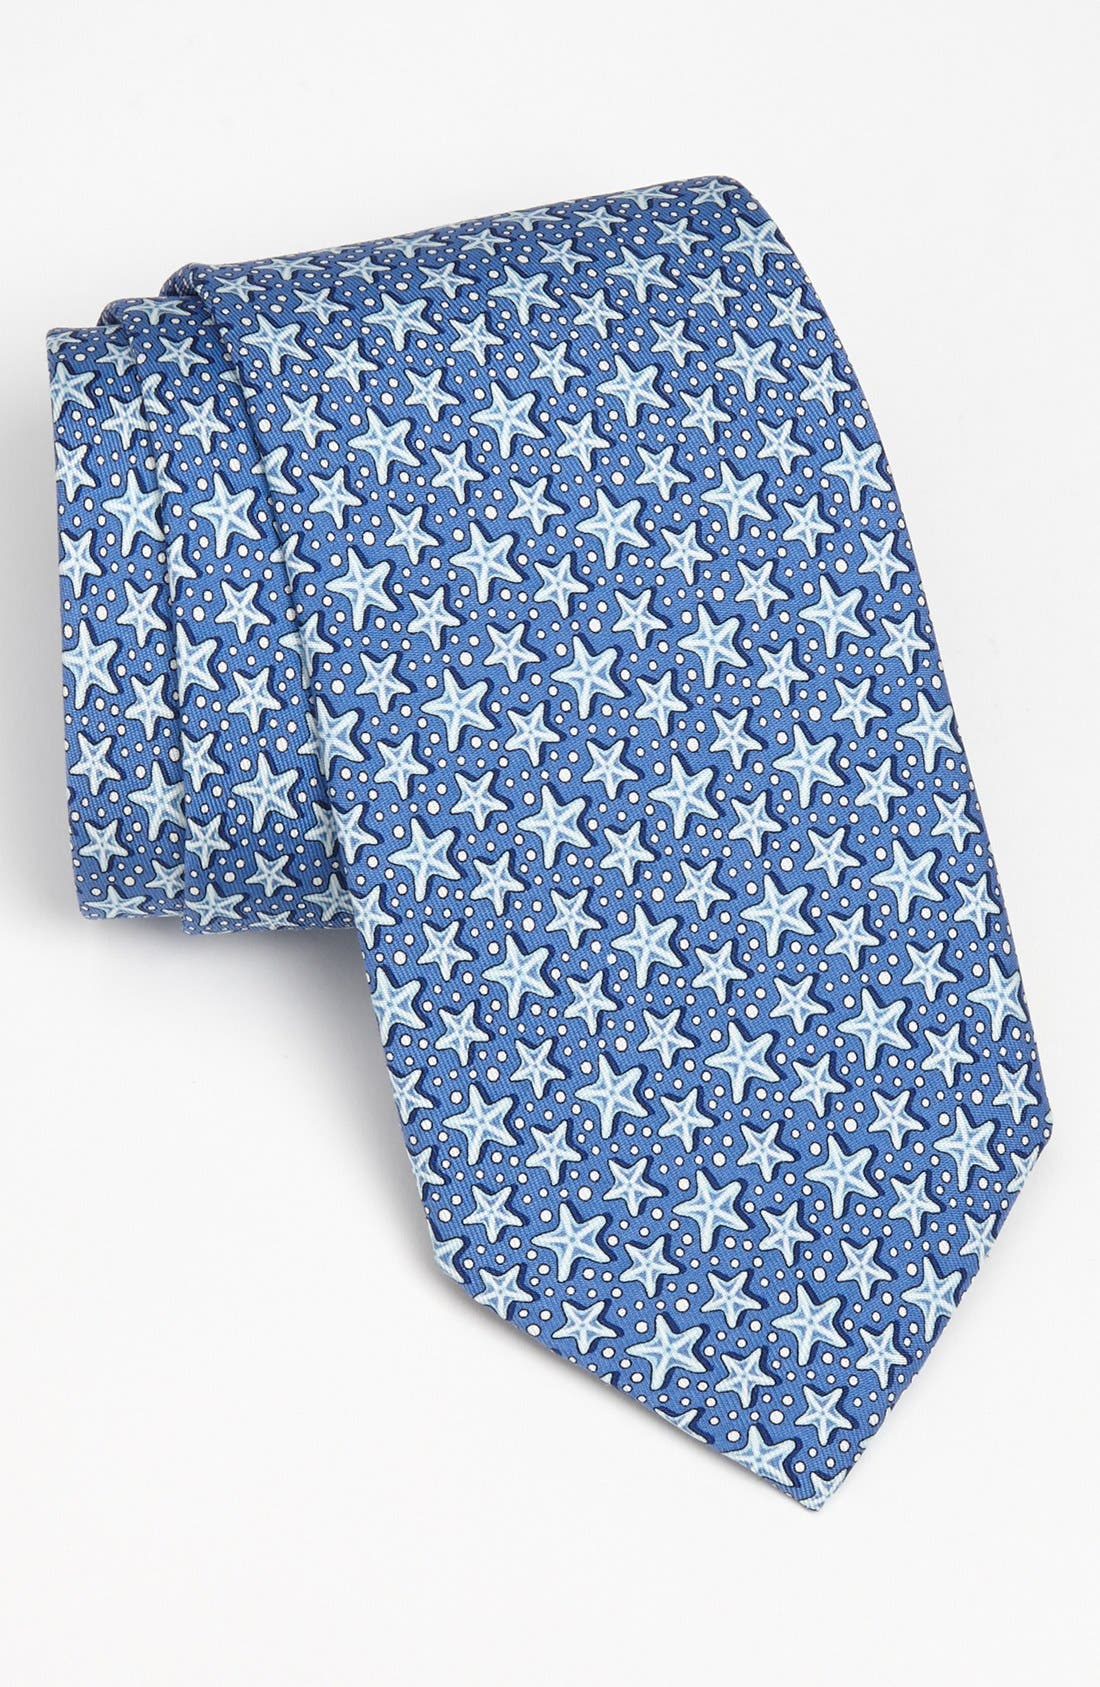 Alternate Image 1 Selected - Vineyard Vines 'Starfish' Silk Tie